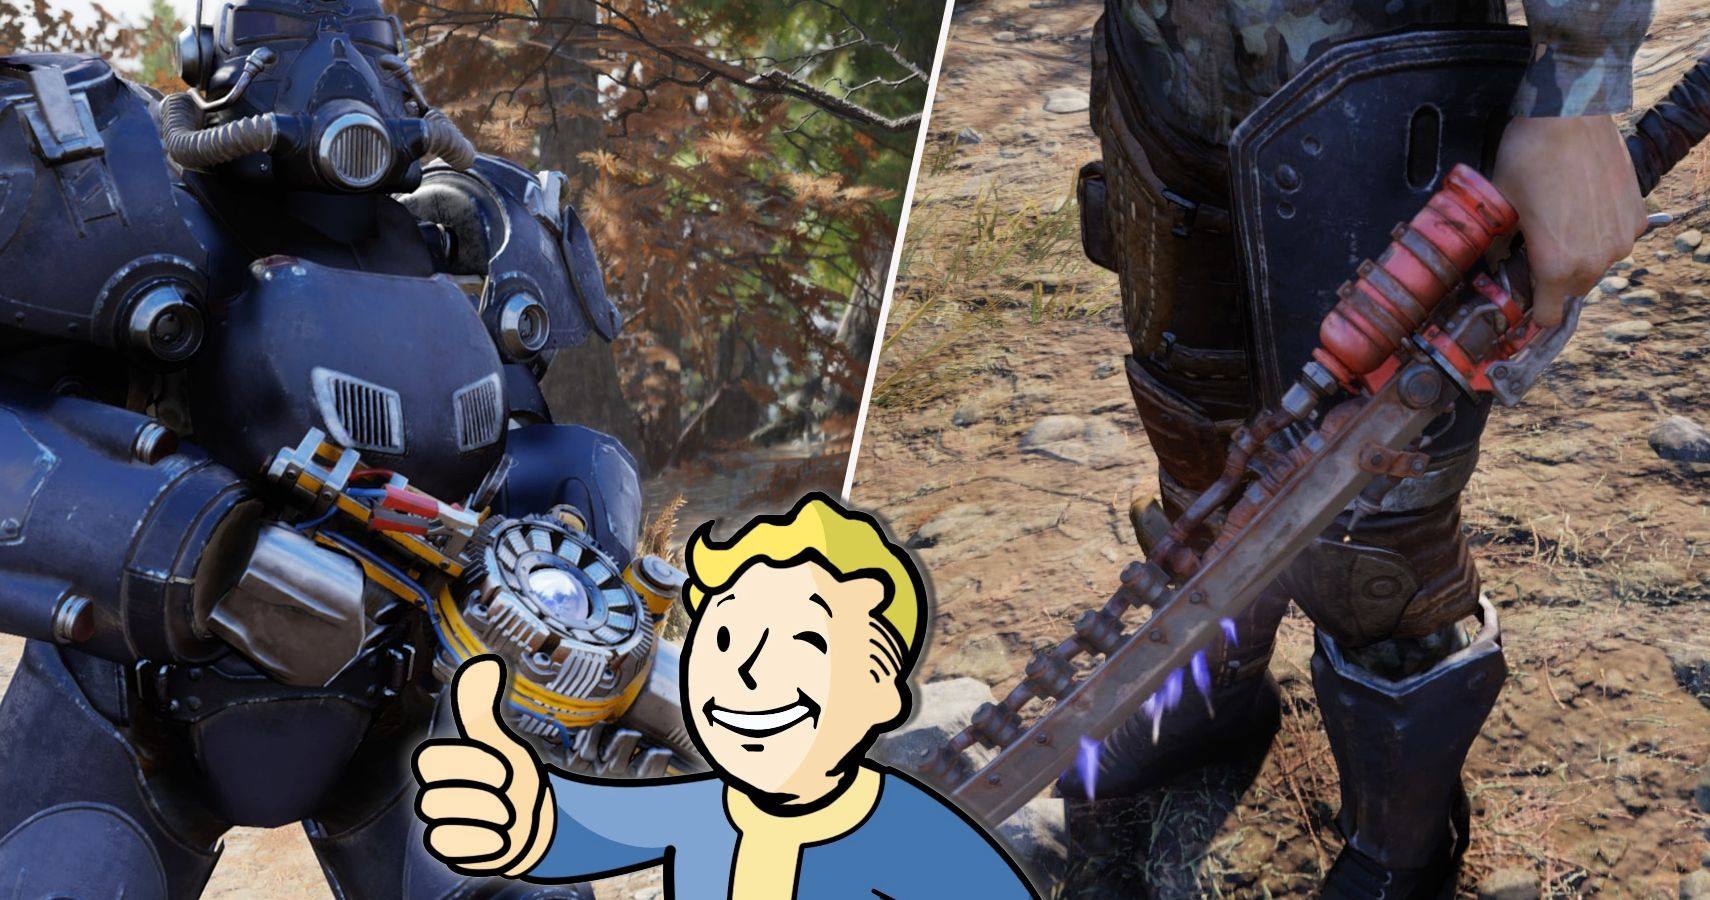 20 Strongest Items In Fallout 76 (And 10 That Aren't Worth